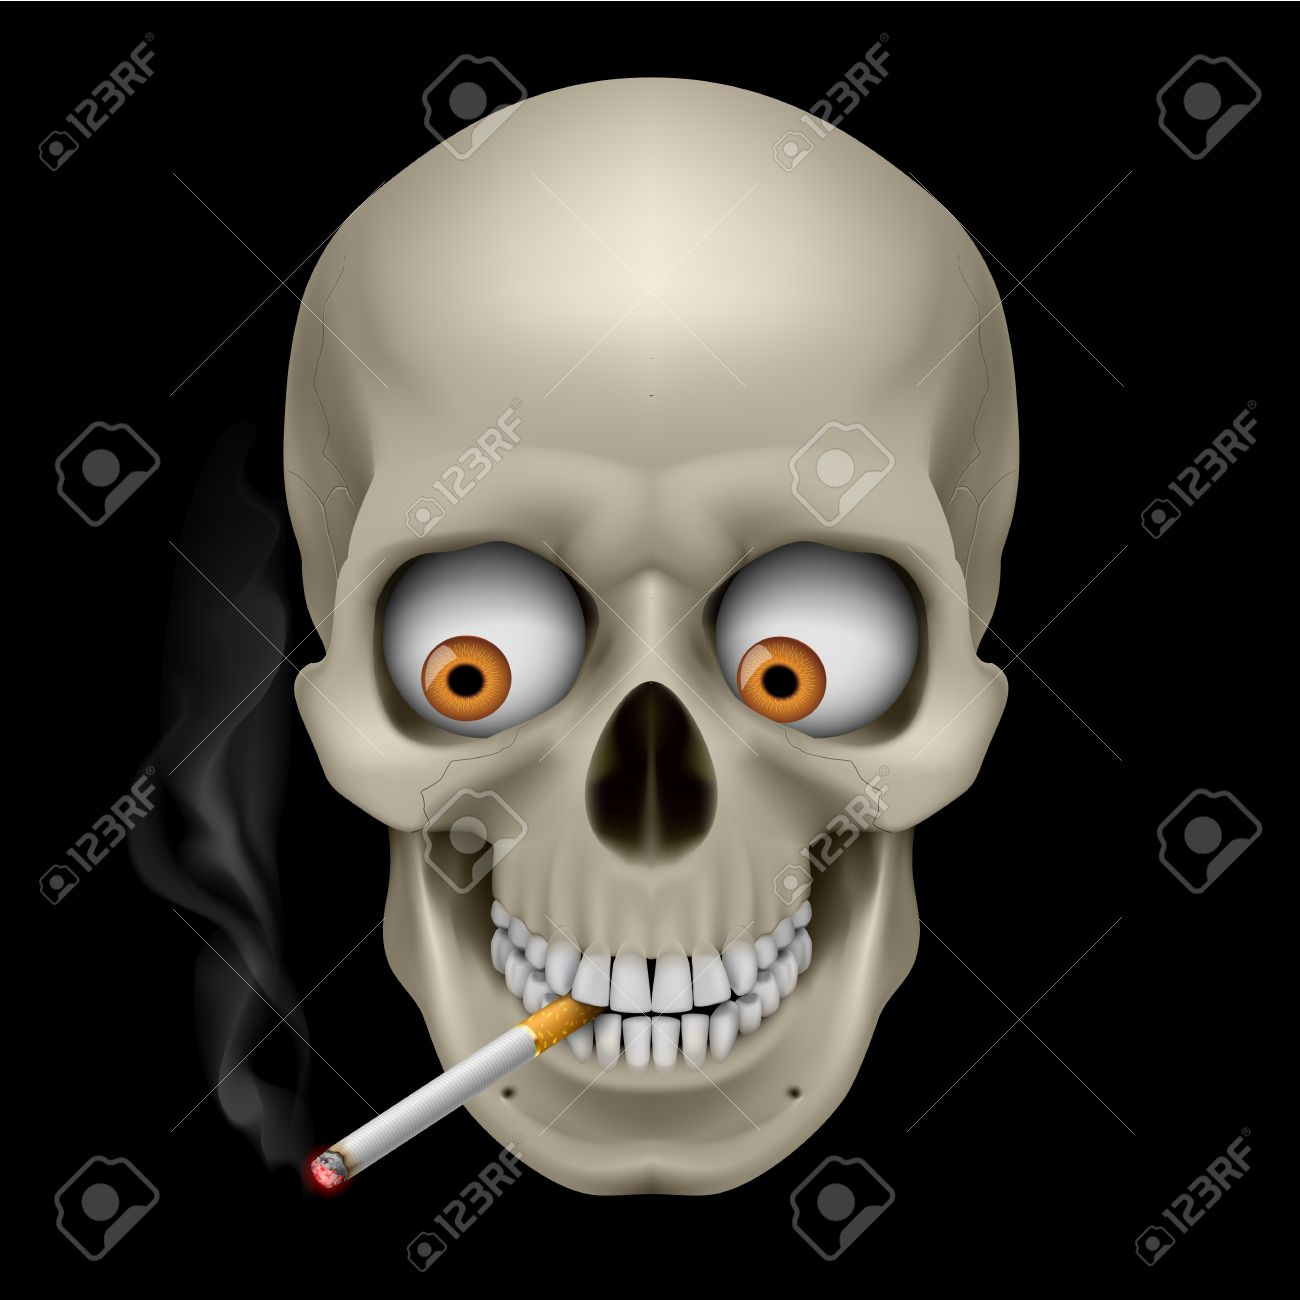 Human Skull with eyes and cigarette. Illustration on black background Stock Vector - 13374036